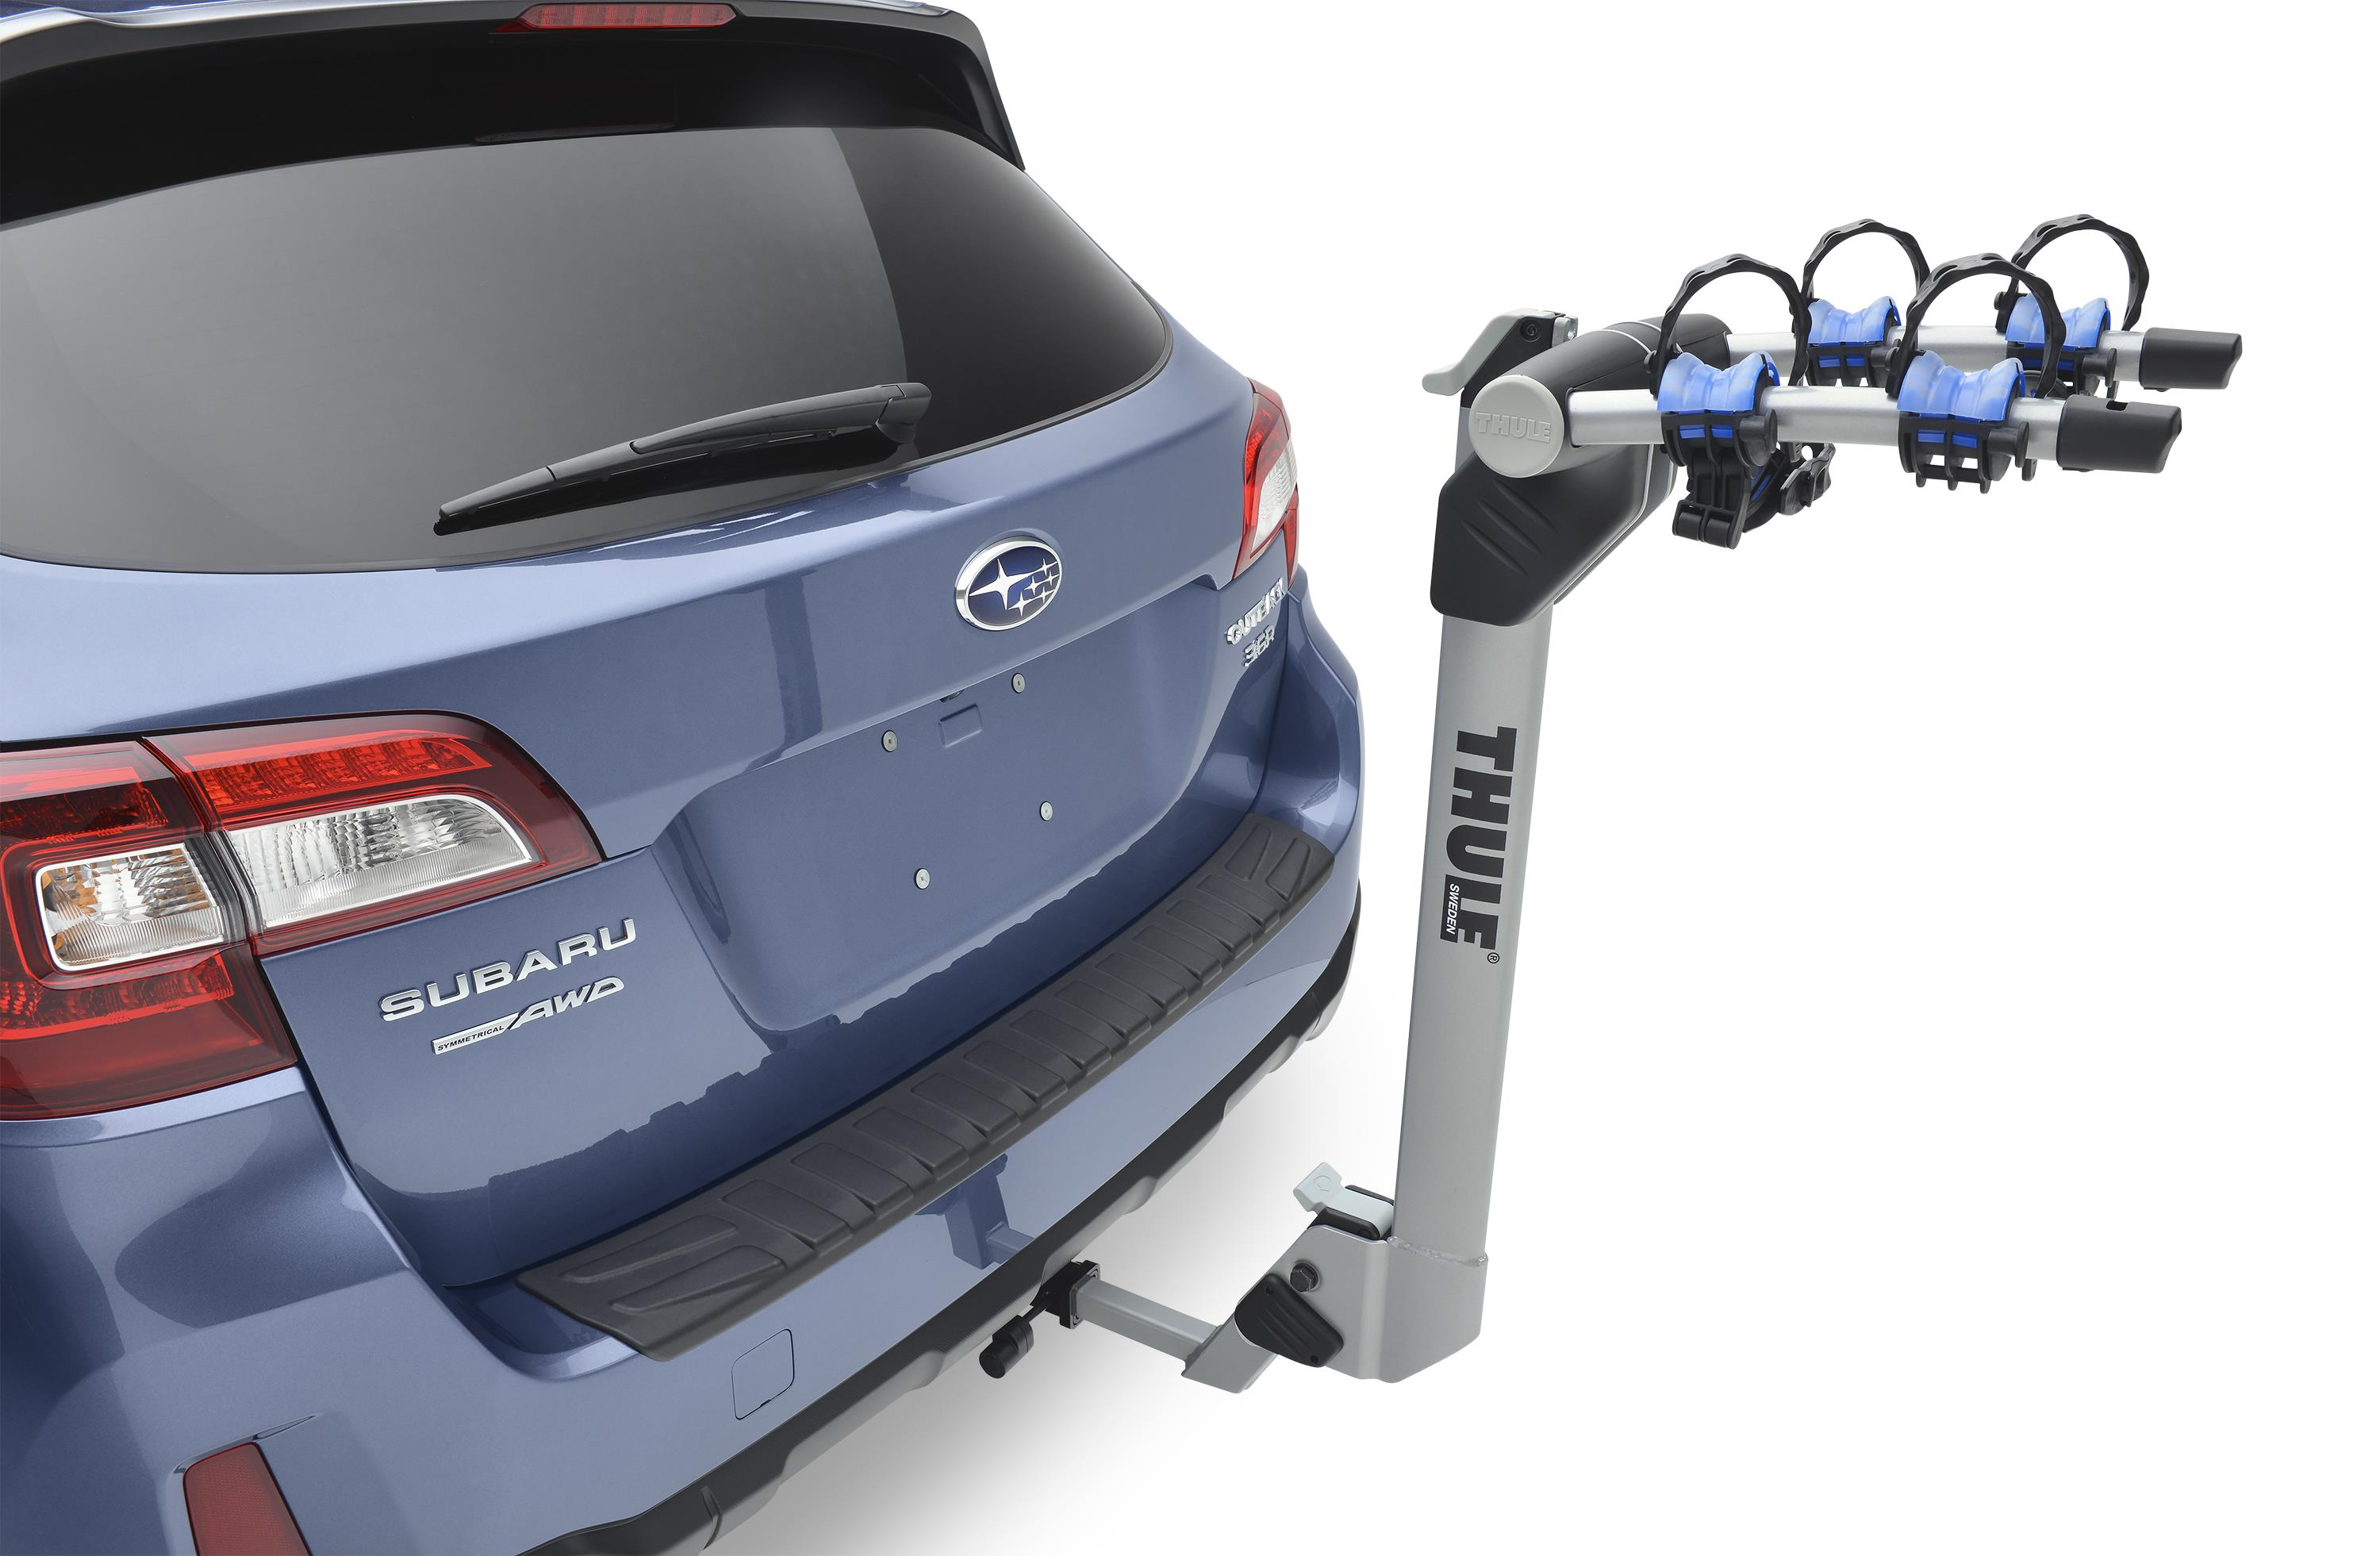 Carter Subaru Shoreline >> Subaru Outback Hitch mounted Bike carrier (Thule). Locking, Rack - SOA567B040 | Carter Subaru ...